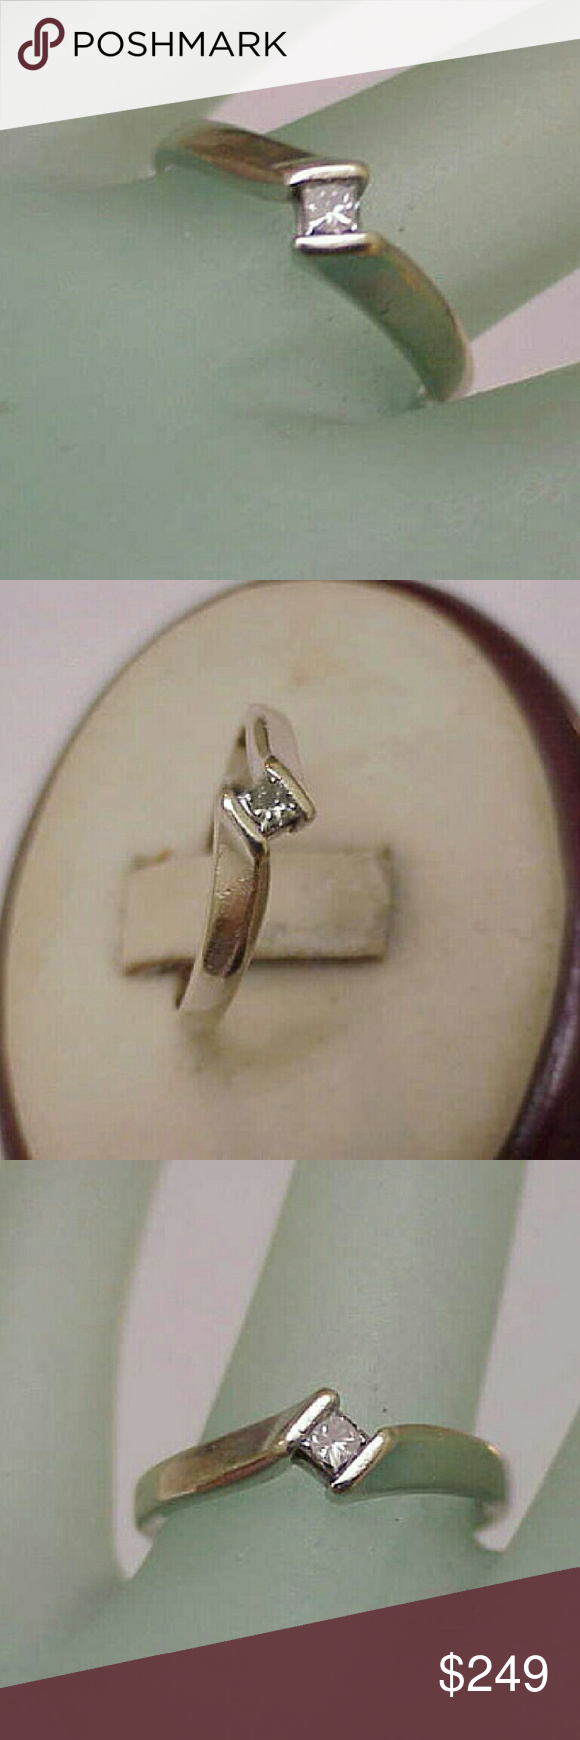 14k  gold. 10ct diamond engagement ring Princess cut diamond si in clarity and h in color.  Stamped 14k Weight 2.2gr Size 6 1/2 Jewelry Rings